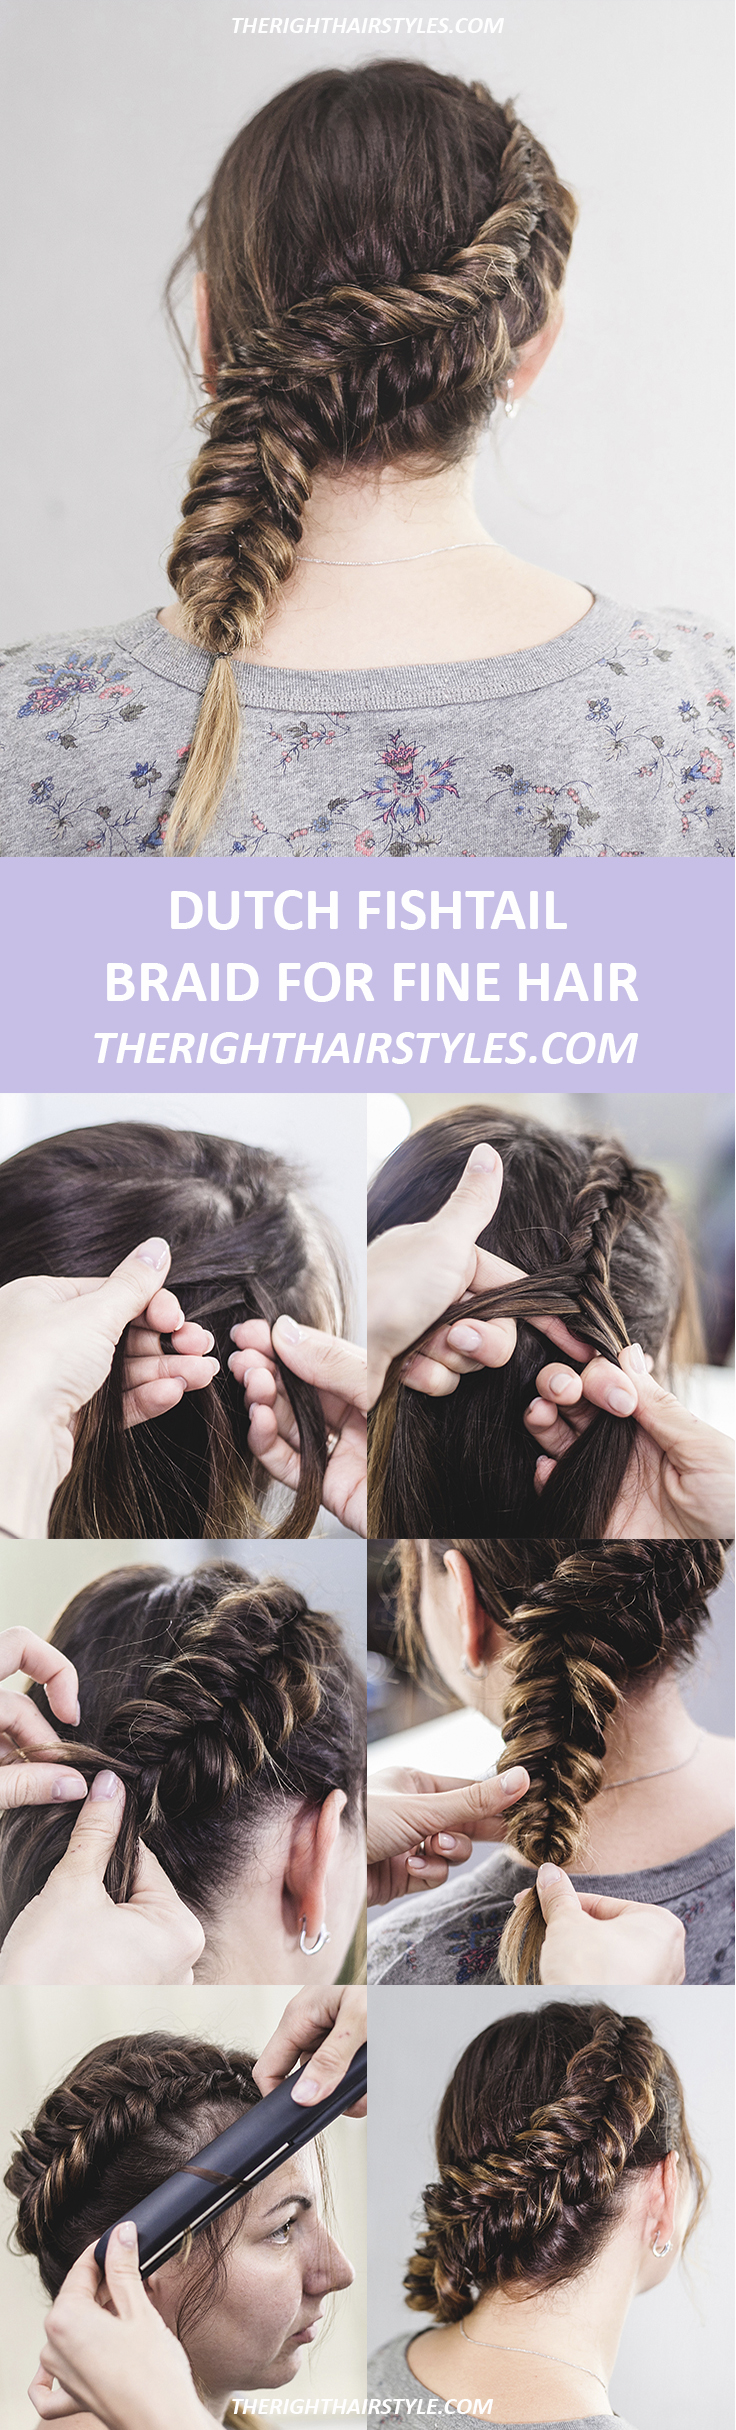 Dutch Fishtail Braid For Long Hair